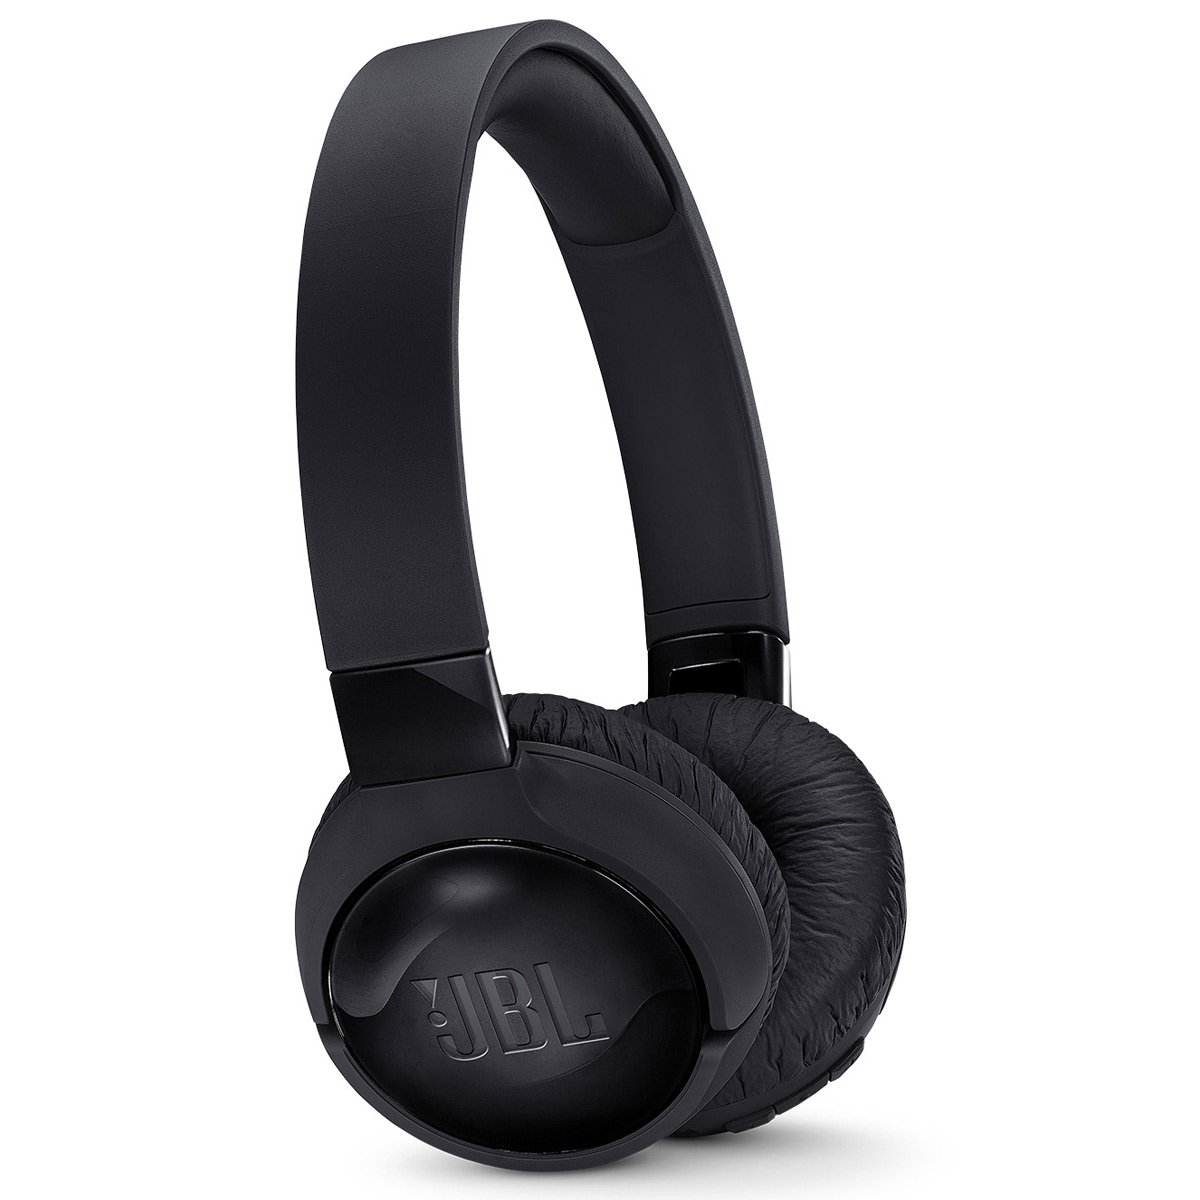 JBL Tune 600 BTNC On-Ear Wireless Bluetooth Noise Canceling Headphones - Black by JBL